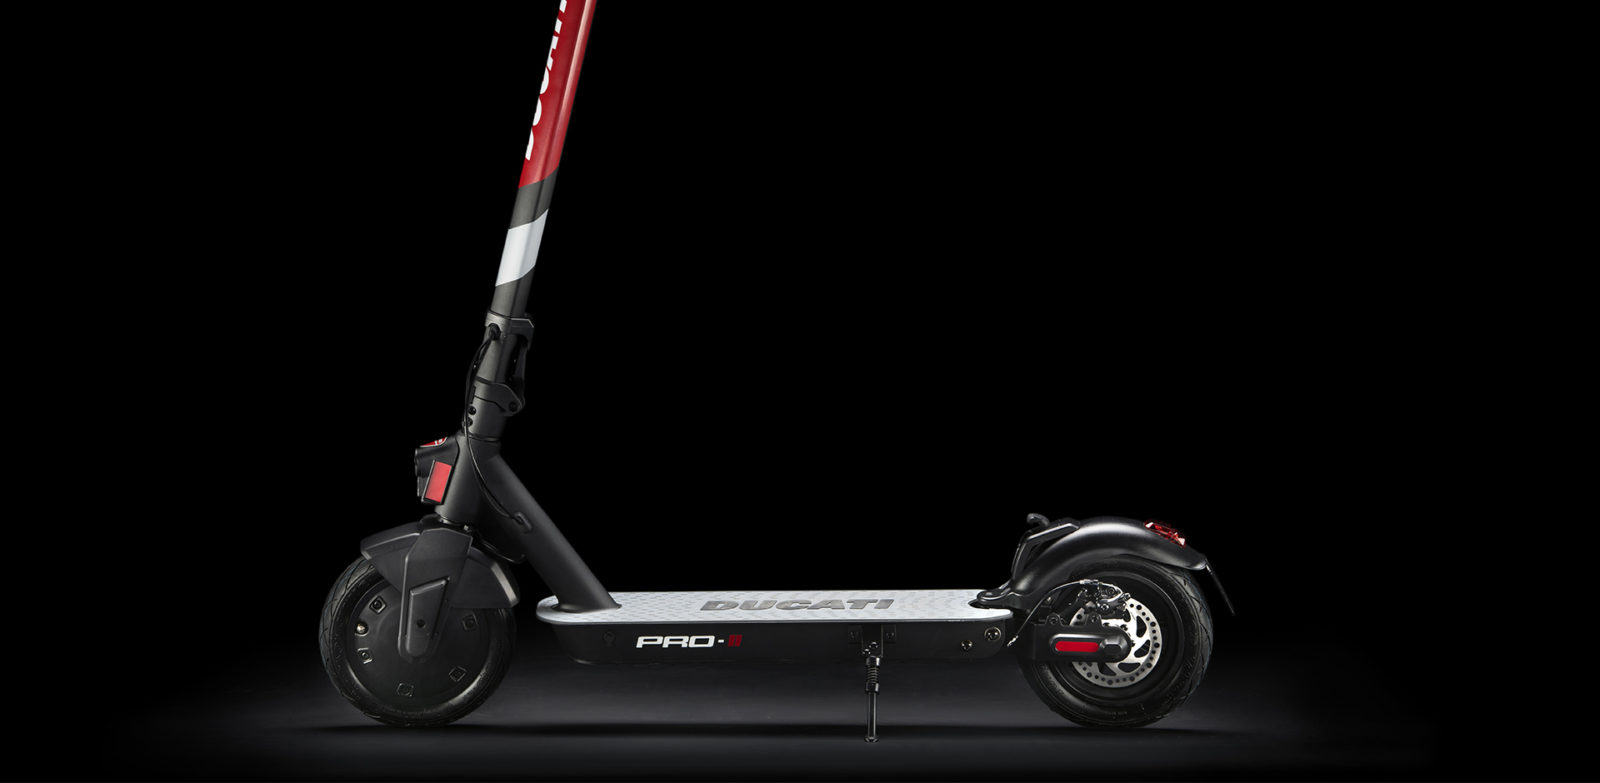 ducati-expands-urban-mobility-lineup-with-top-shelf-magnesium-pro-ii-e-scooter